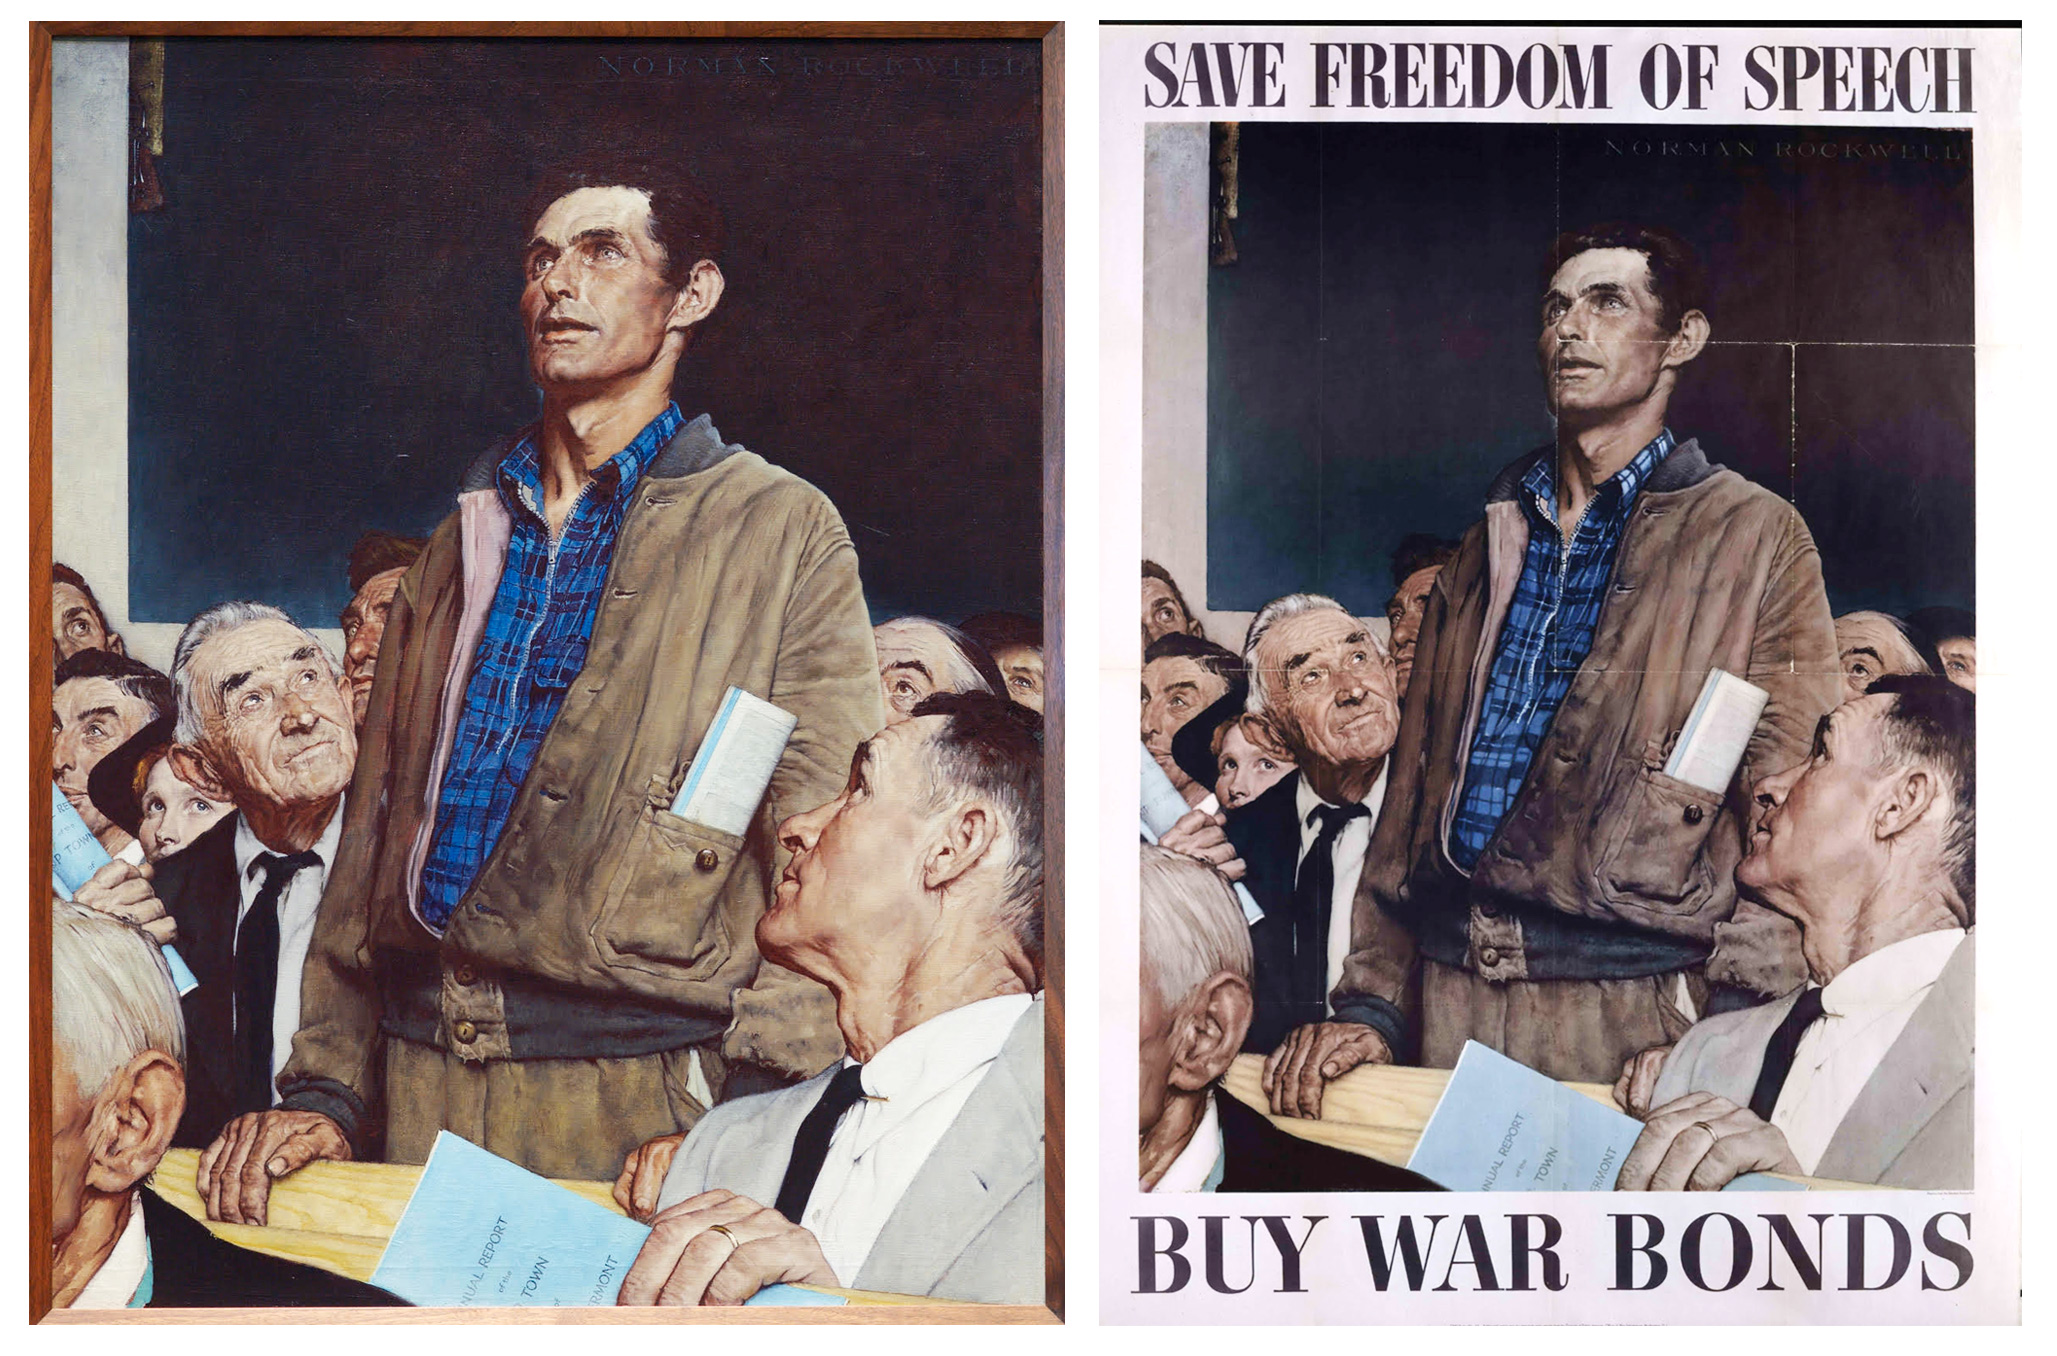 norman-rockwell-freedom-of-speech.jpg?re